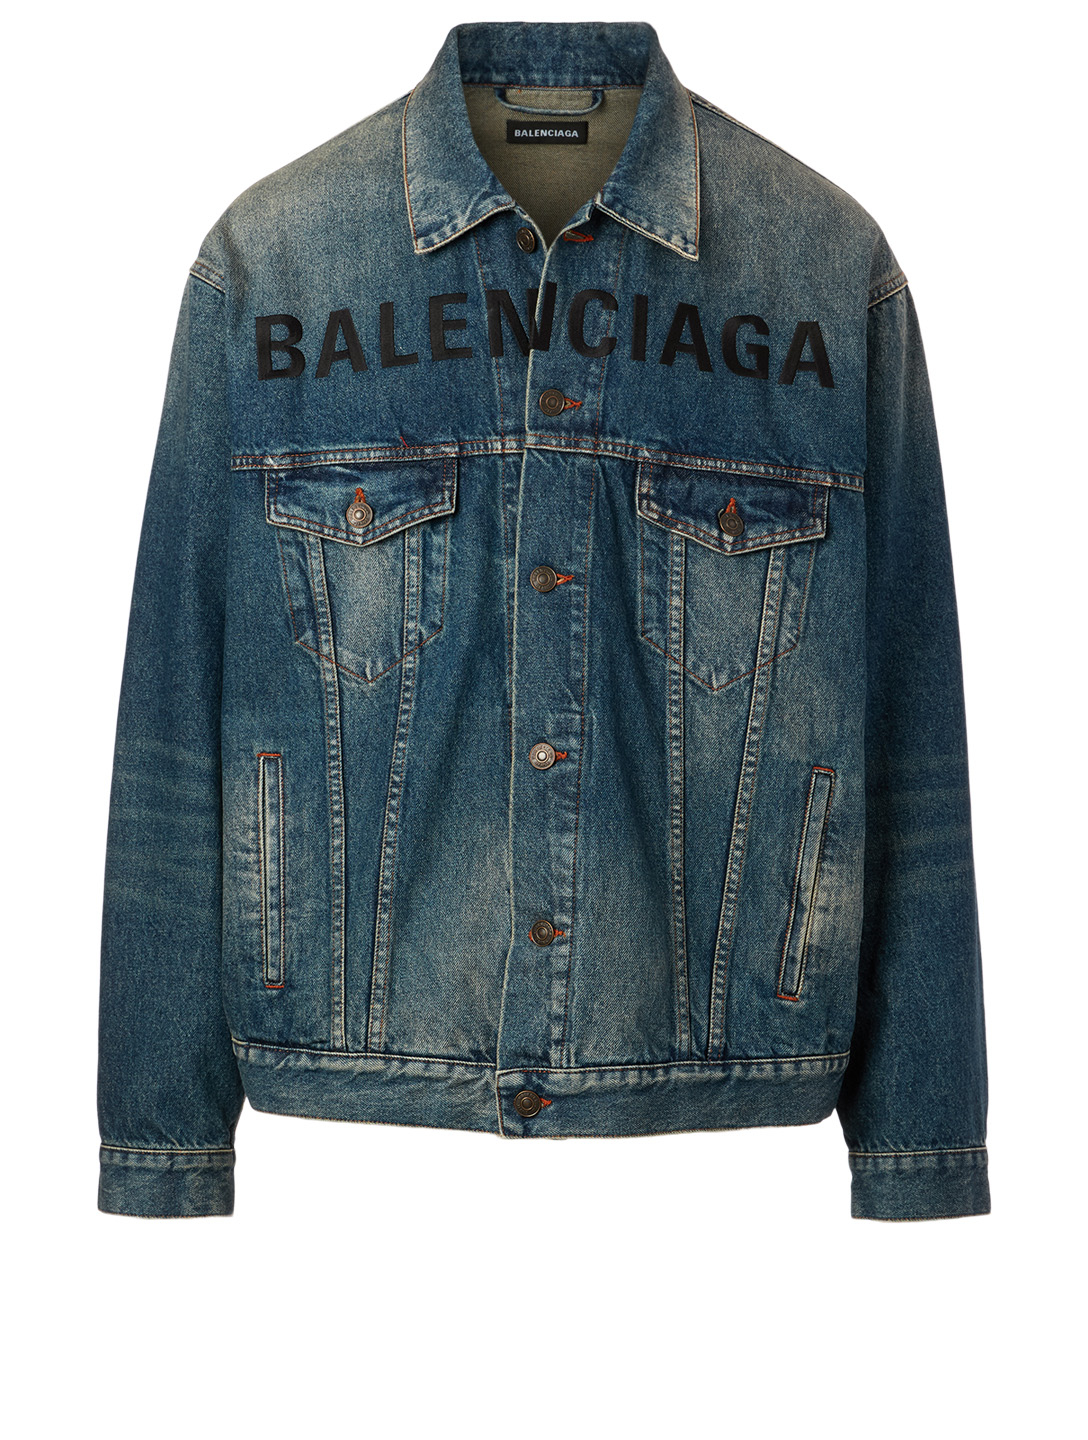 BALENCIAGA Logo Denim Jacket Men's Blue